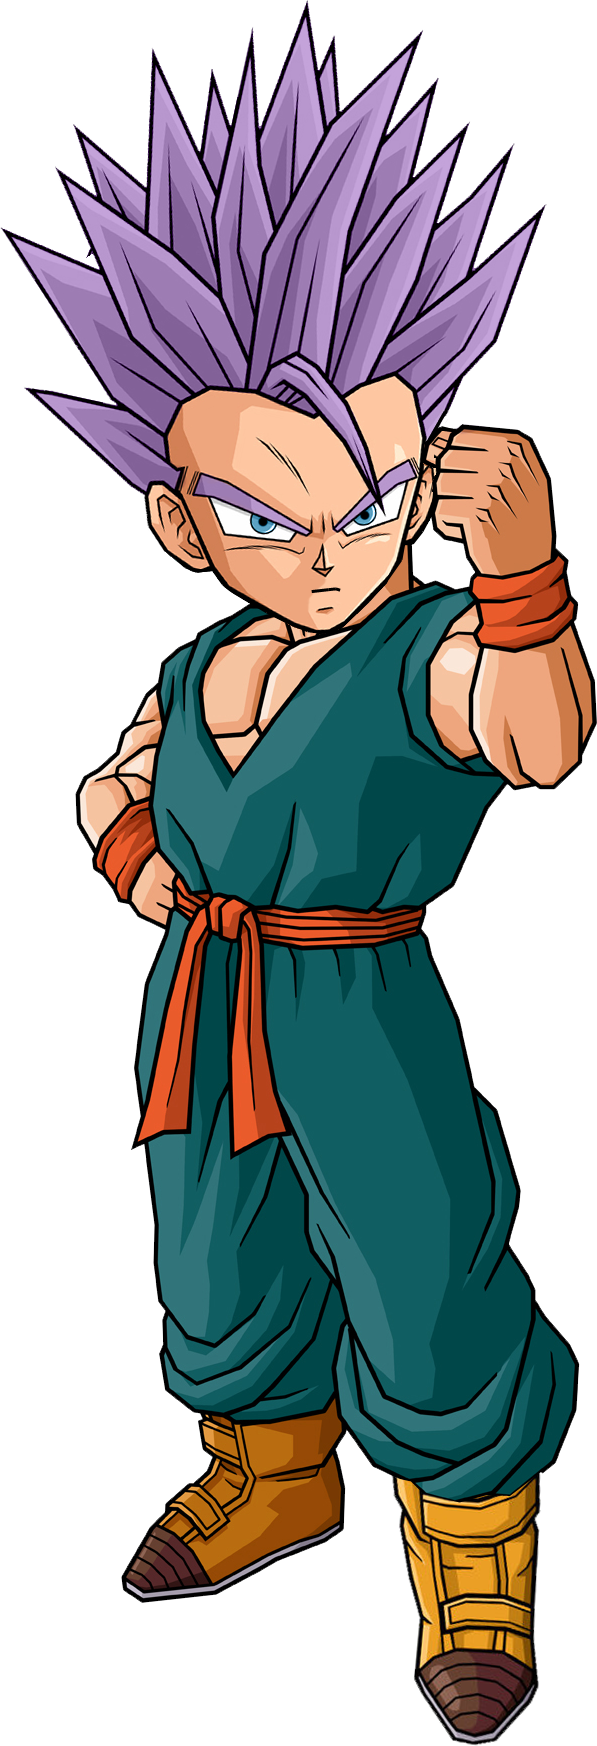 Kid trunks png. Image mystic by db